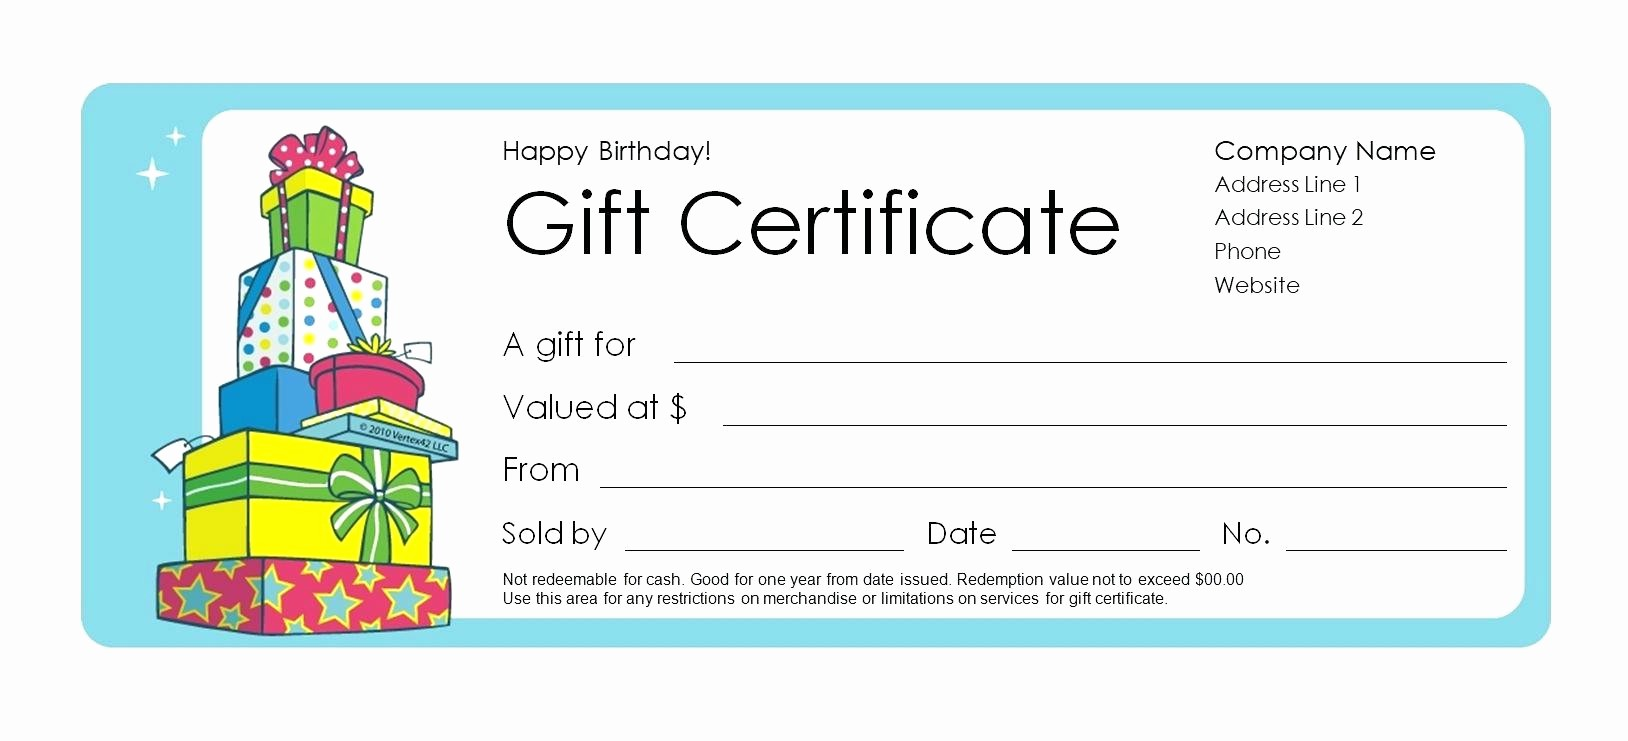 Gift Certificate Samples Free Templates Unique Template Microsoft Word Gift Certificate Template